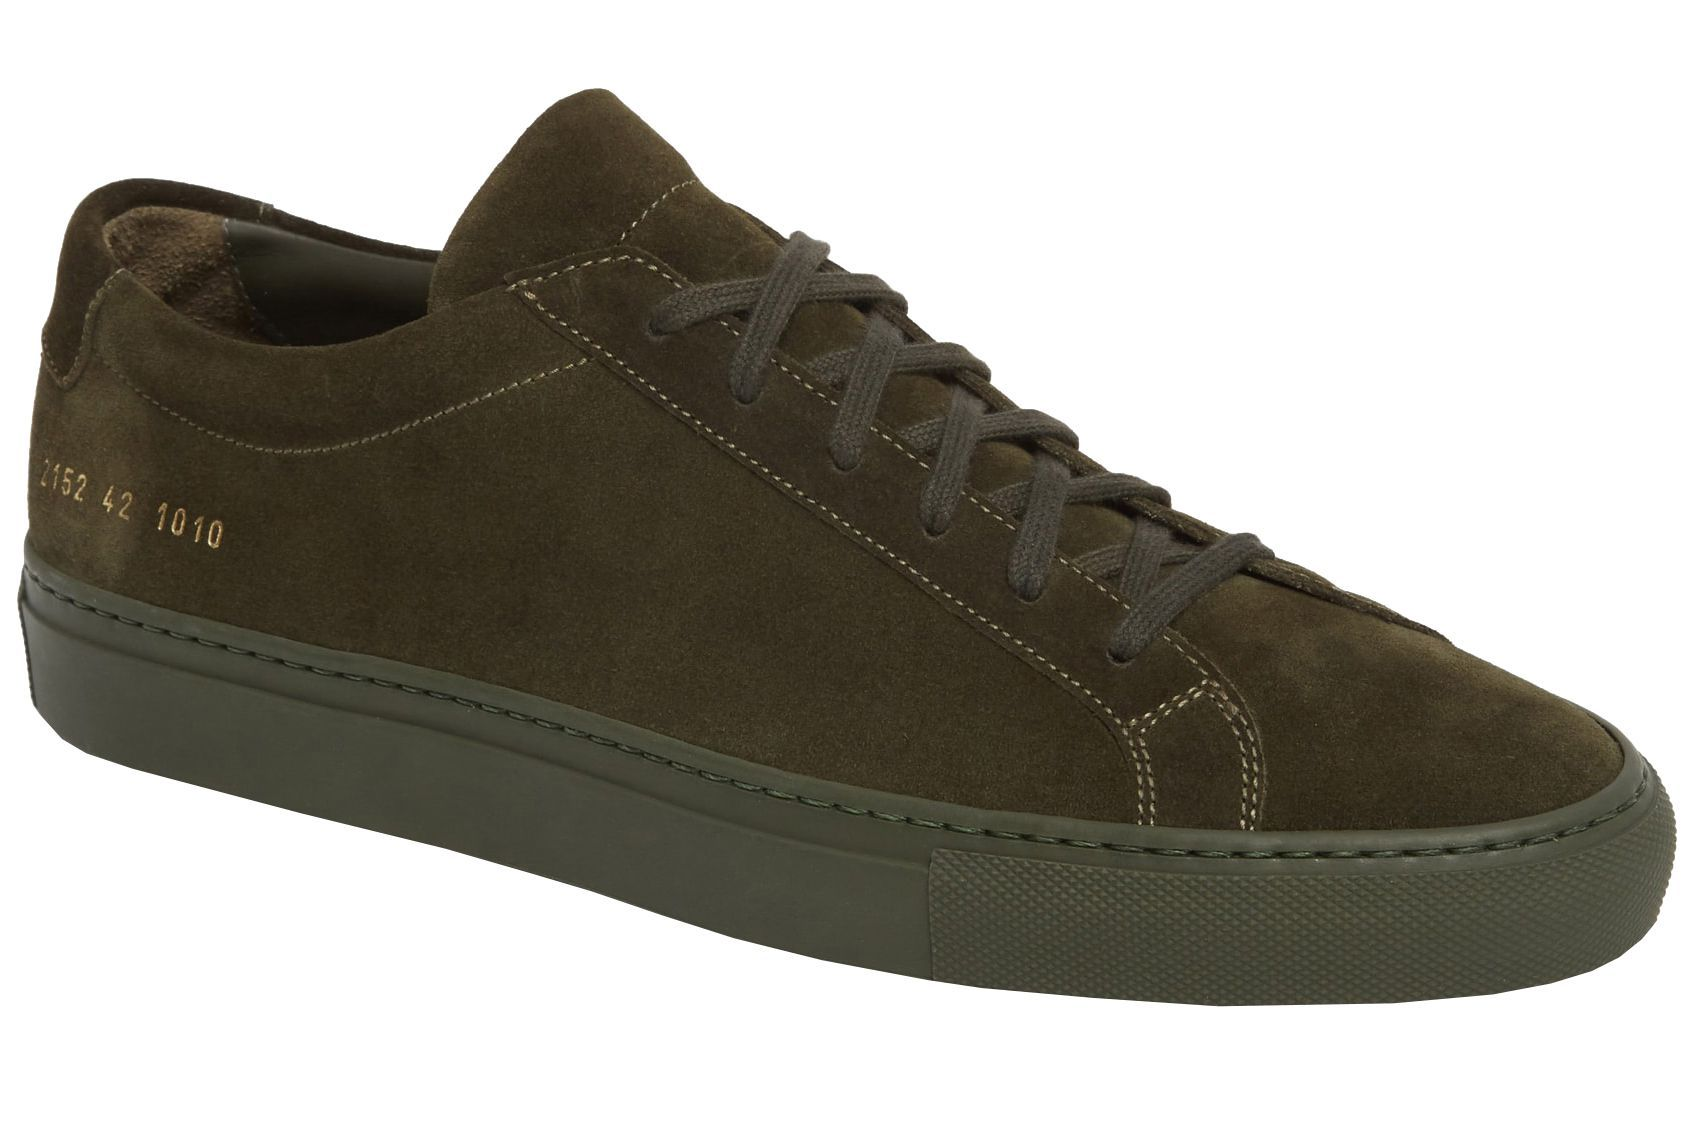 half off b036f 81fcb 11 Best Suede Sneakers for Men - Suede Shoes for Spring and Summer 2018